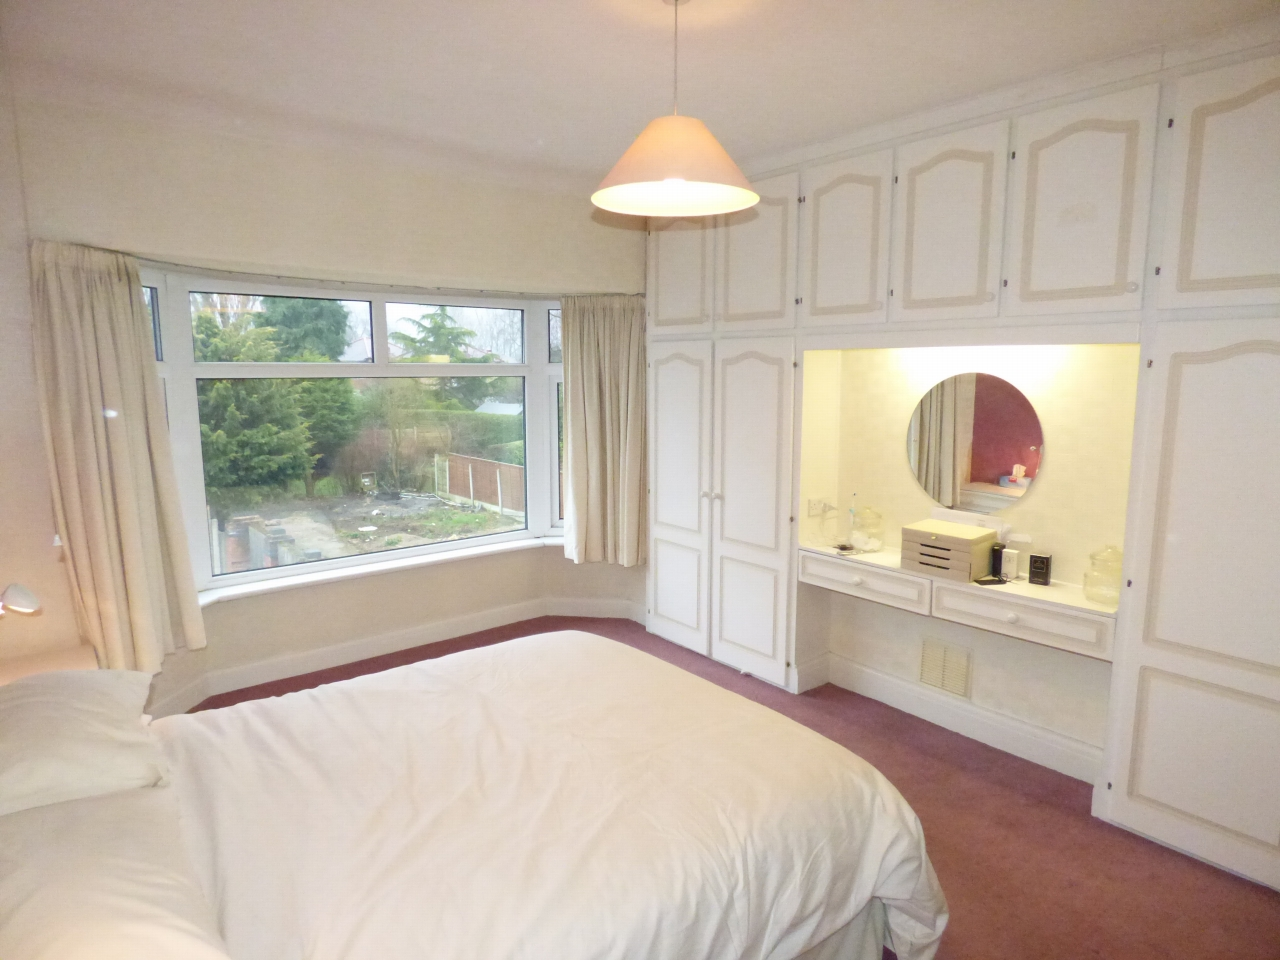 3 Bedroom Semi detached House For Sale in 20 Beaufort Road